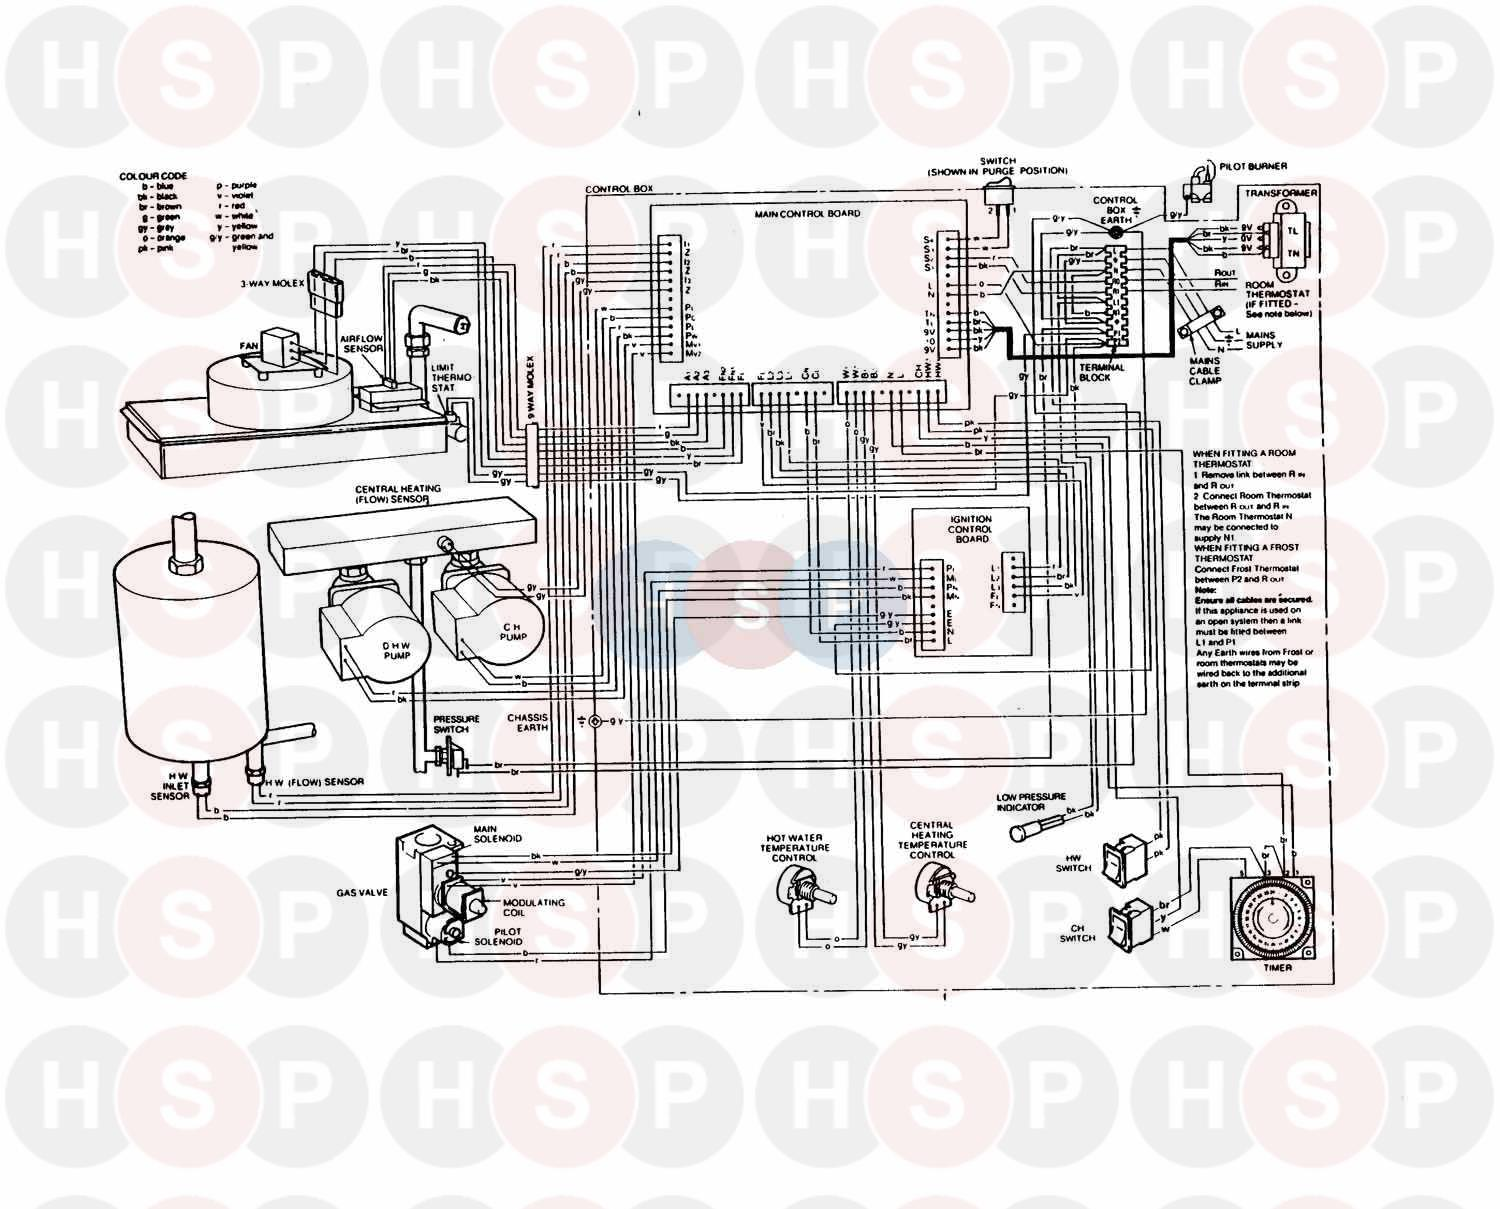 Thorn MIDAS SFI 1993 Appliance Diagram (Wiring 2